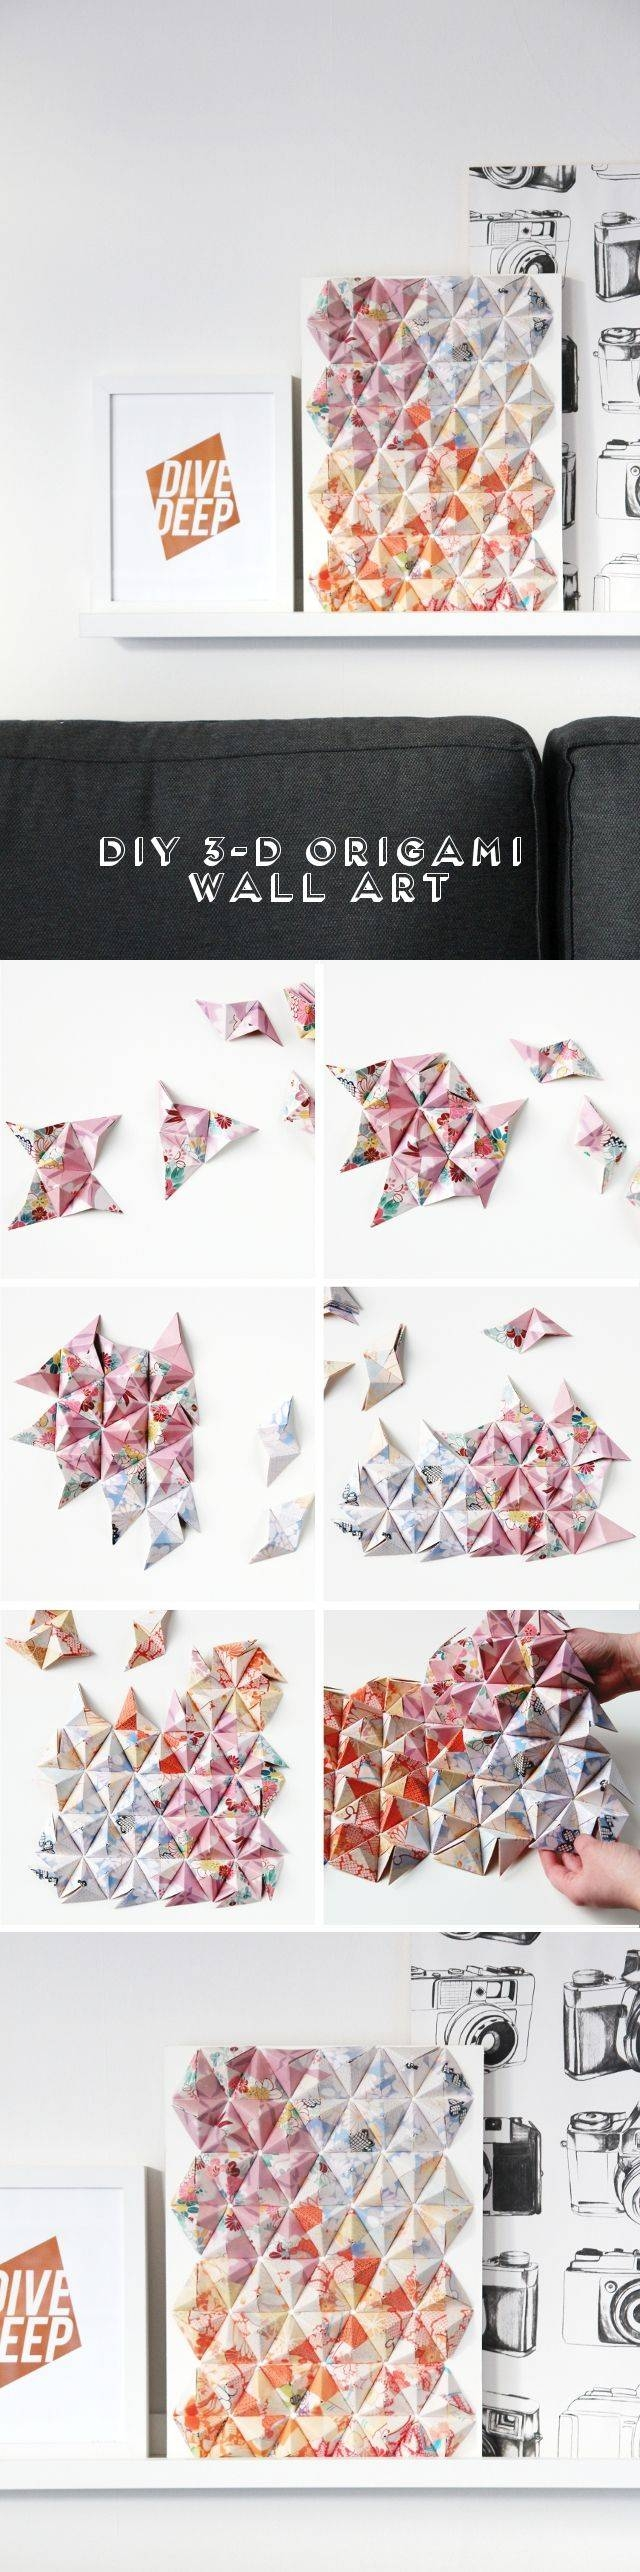 25+ Unique Origami Wall Art Ideas On Pinterest | Paper Wall Decor Within Most Up To Date 3D Clouds Out Of Paper Wall Art (View 7 of 25)